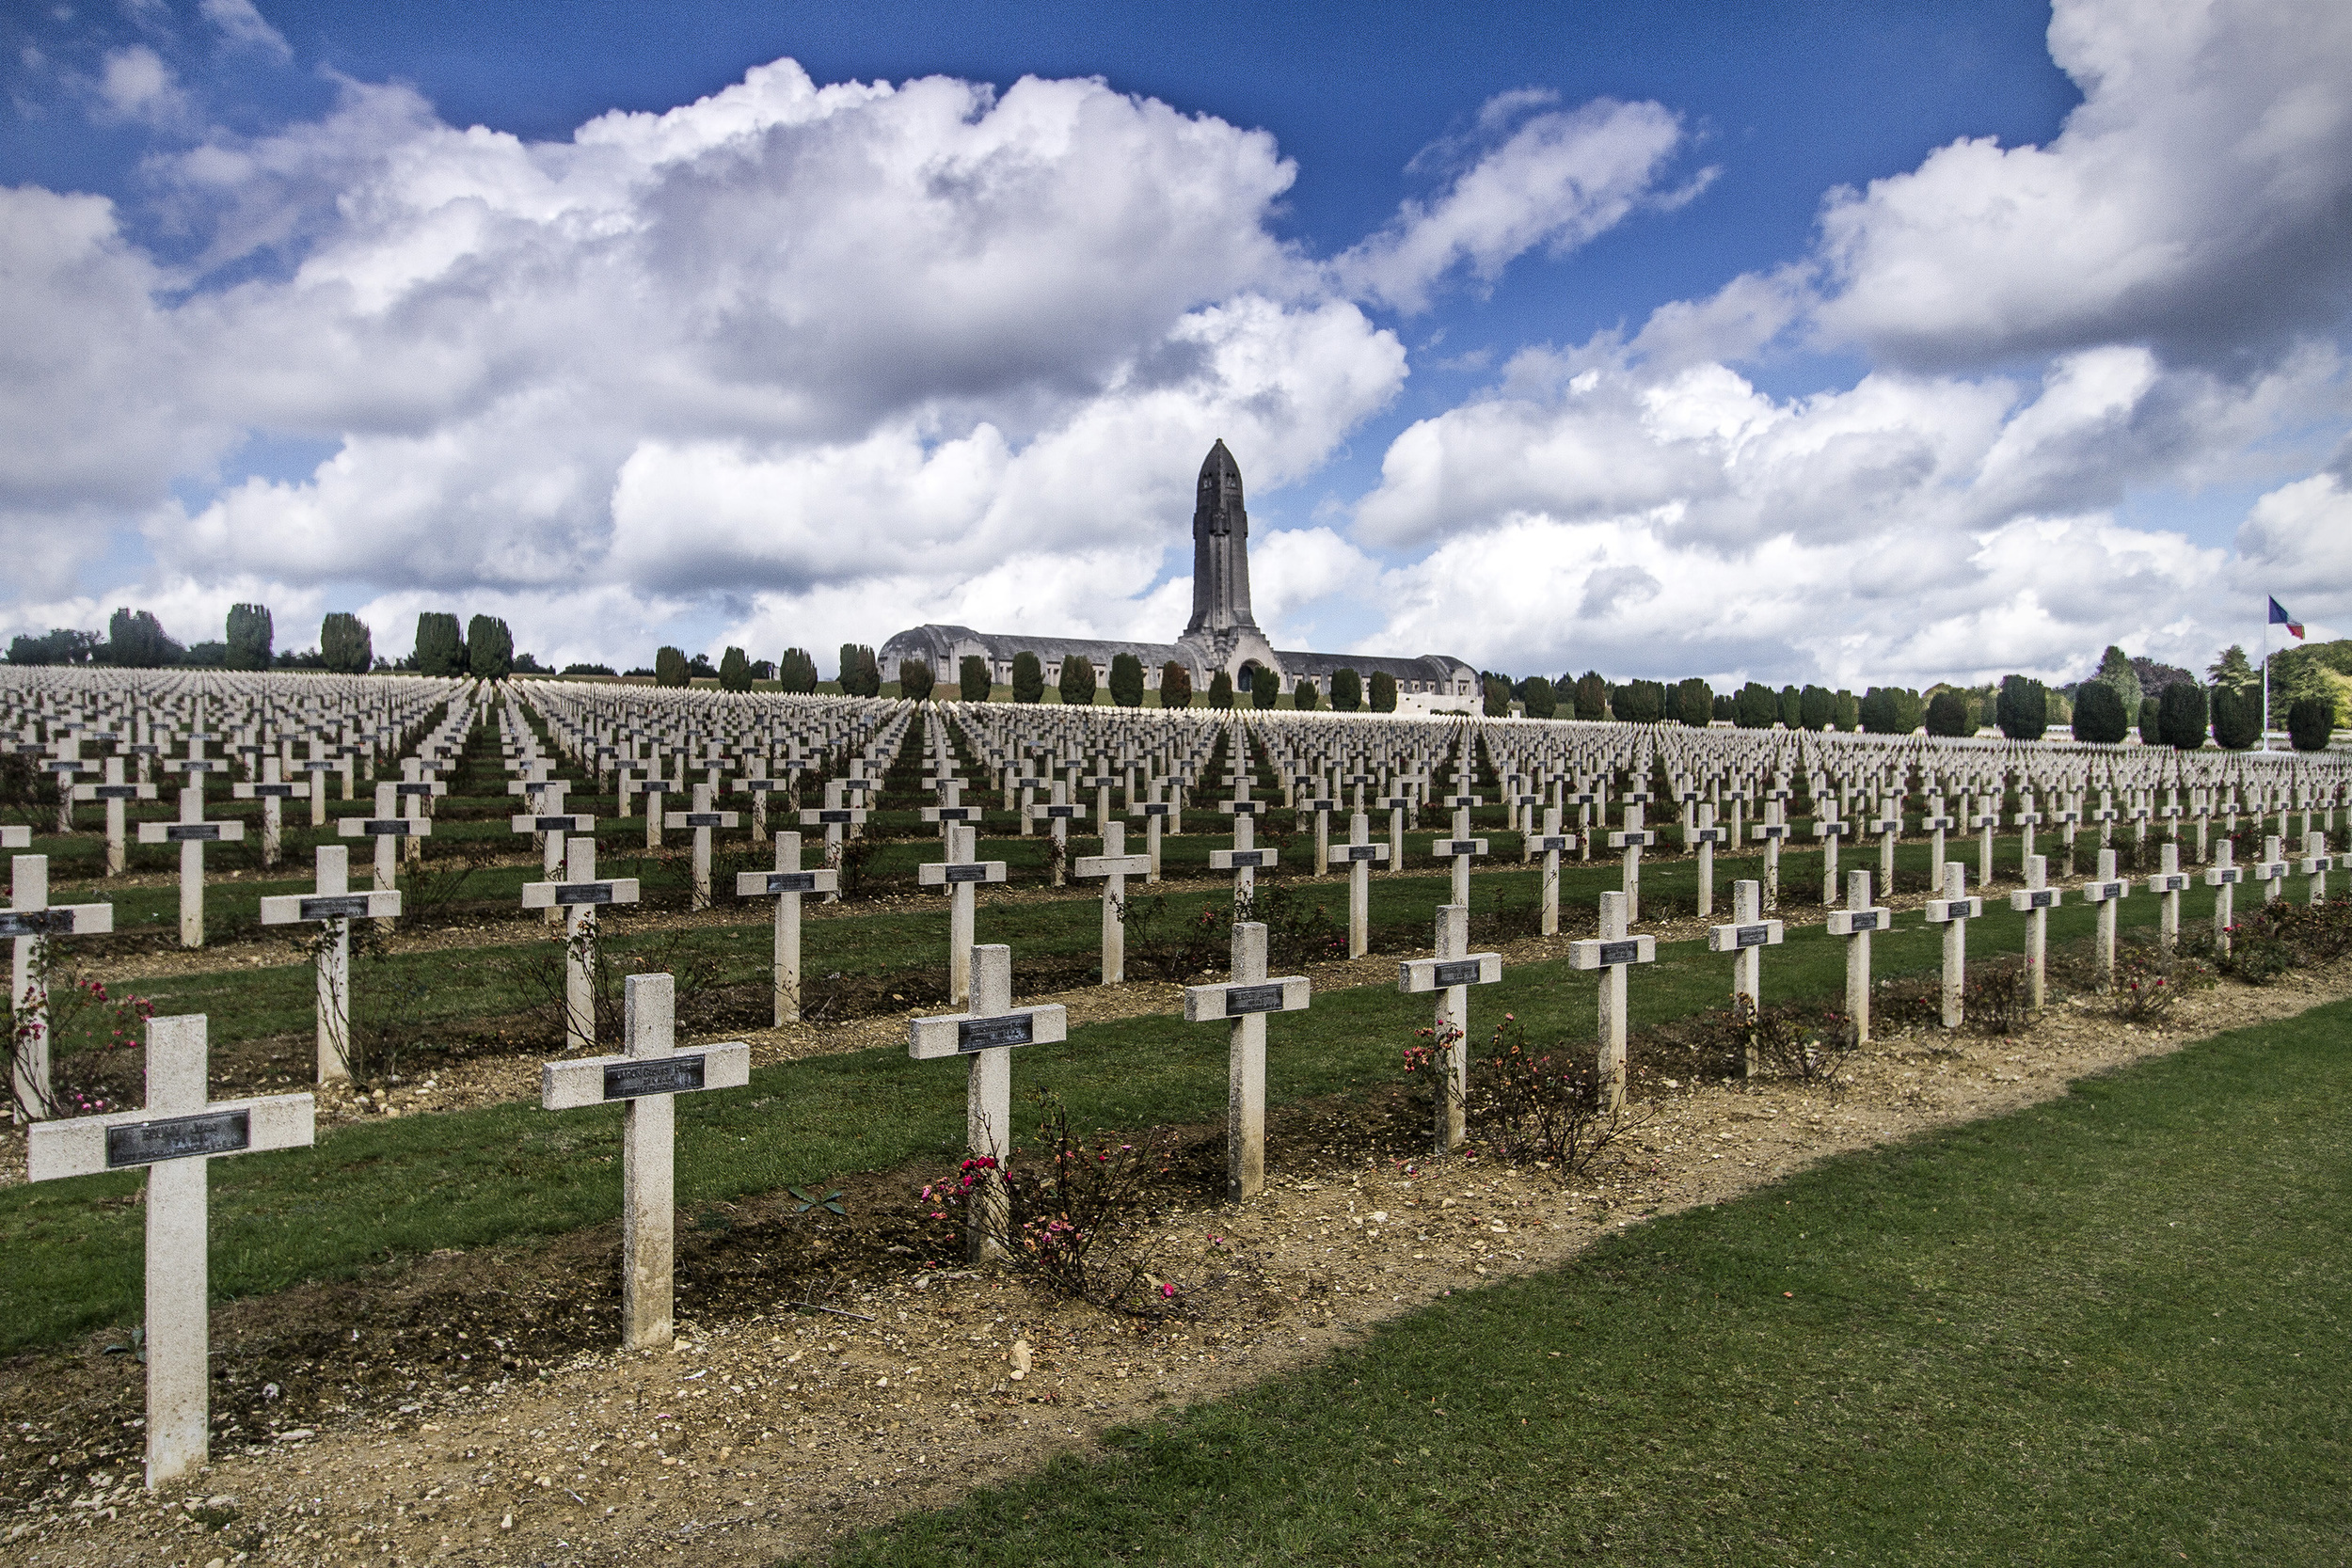 Normal   0           false   false   false     EN-US   X-NONE   X-NONE                                                                                 L'ossuaire de Douaumont   L'ossuaire de Douaumont, the single largest French military cemetery of the First World War with 16,142 graves, the majority from the 300 day 'Battle of Verdun' in 1916. In the Ossuary itself the skeletal remains of another 130,000 unidentified French and German soldiers can be viewed through small windows at the buildings rear.  The design of the building itself is based upon the hilt of a sword plunged into the earth with the skeletal remains beneath it forming the blade.